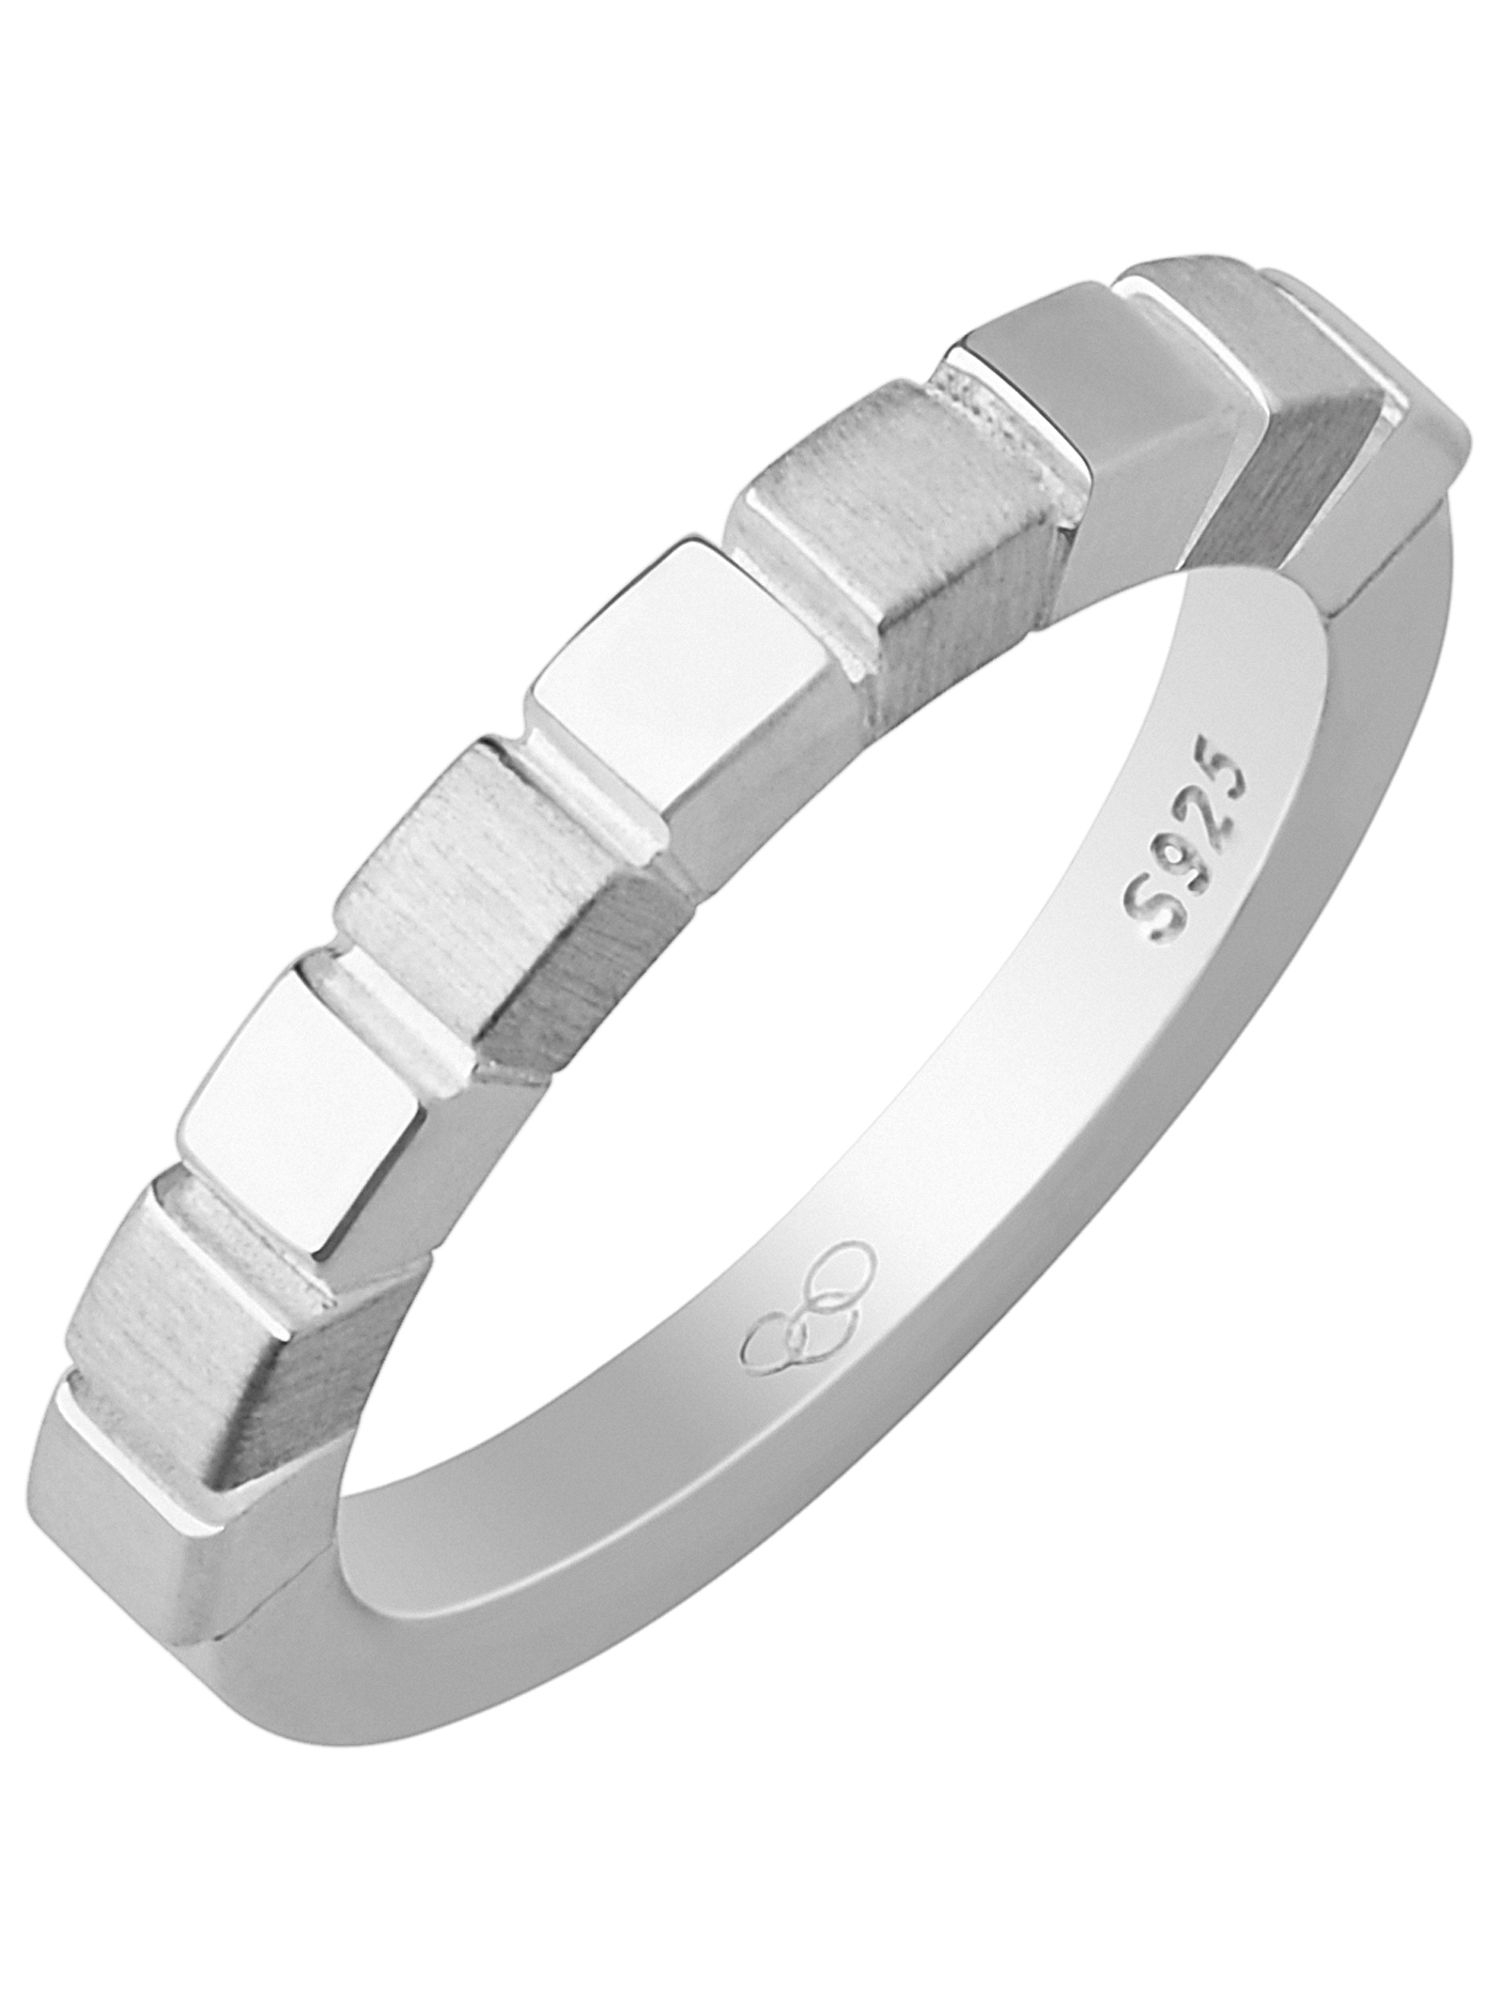 Lyst Links Of London Cubist Ring in Metallic